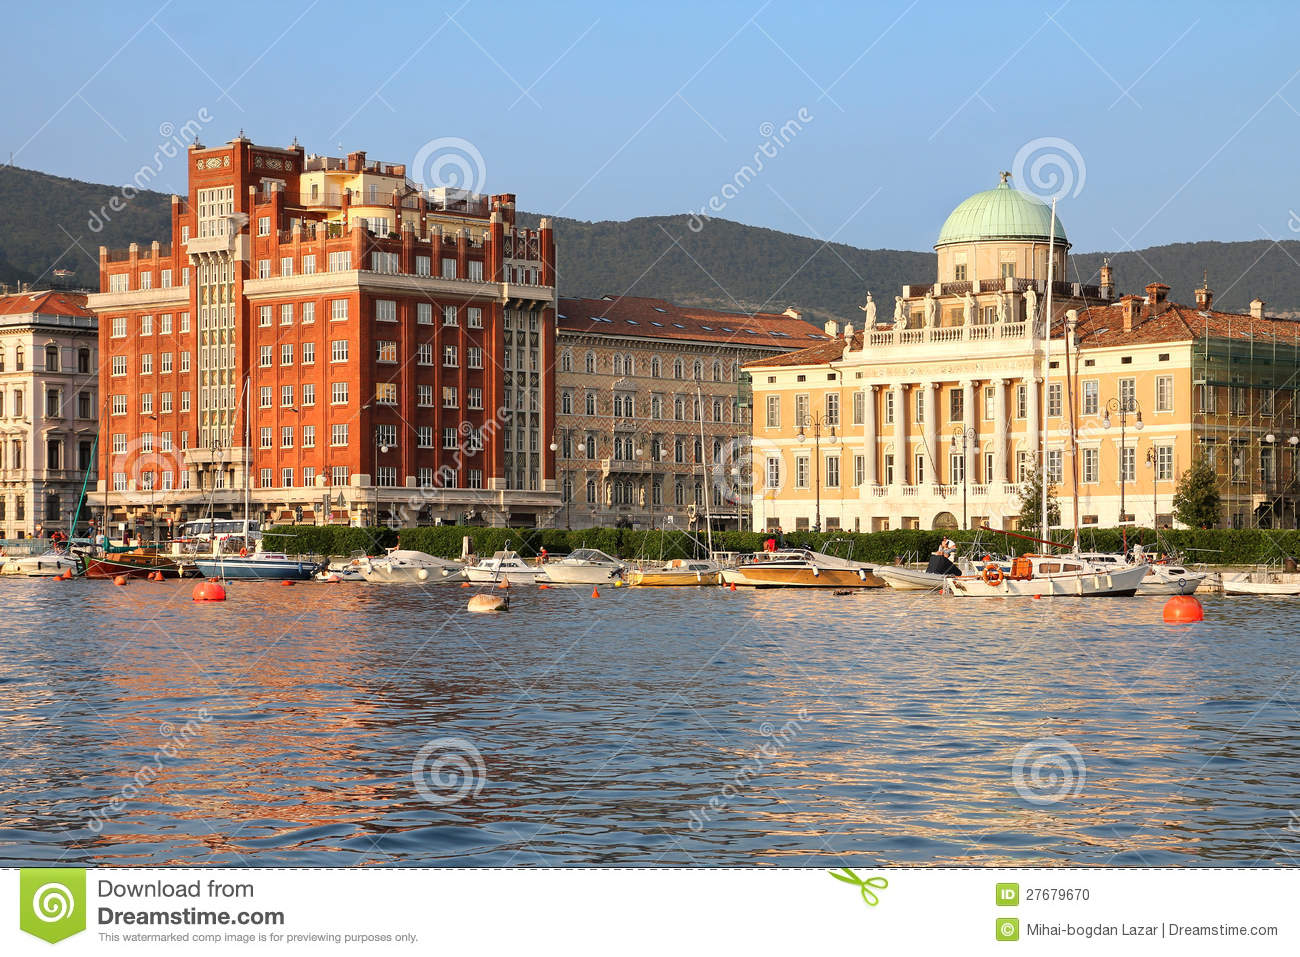 Seafront in Trieste, Italy